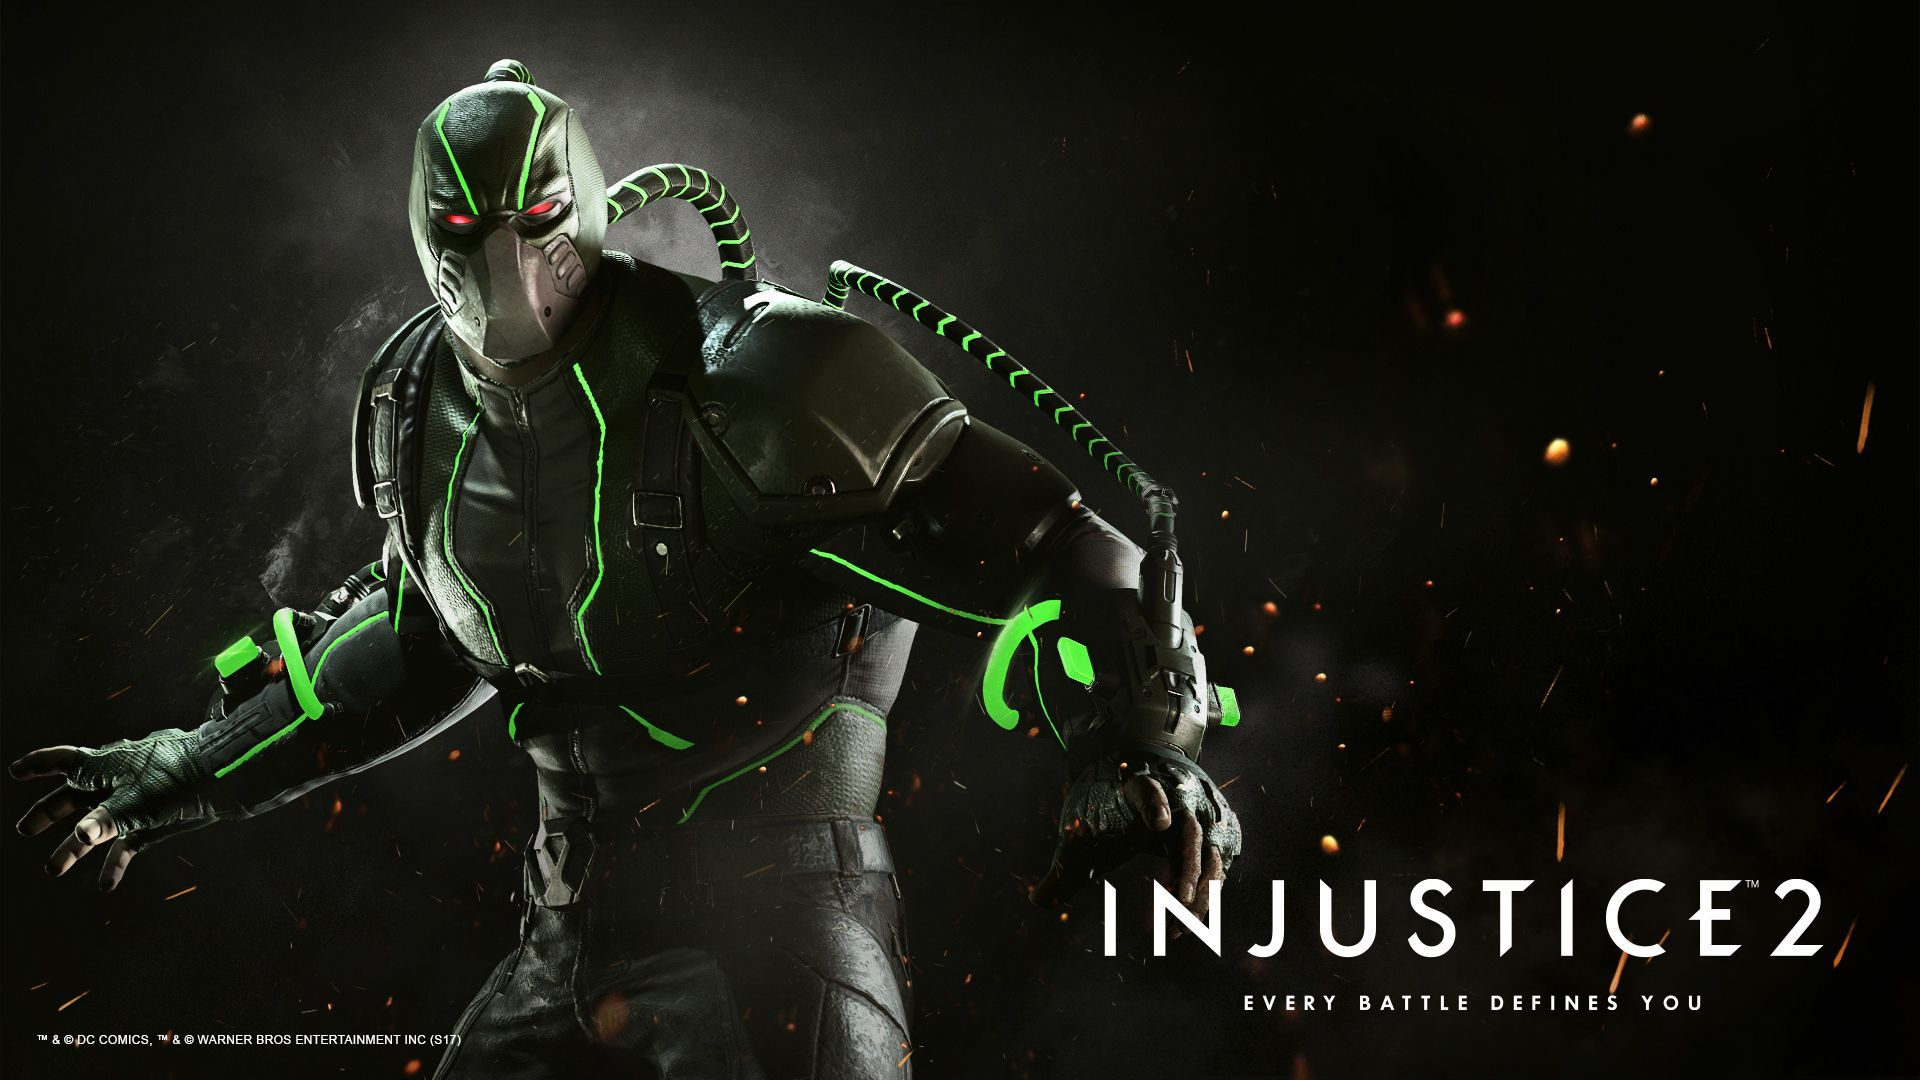 Injustice2 BANE Wallpaper 1920x1080 12